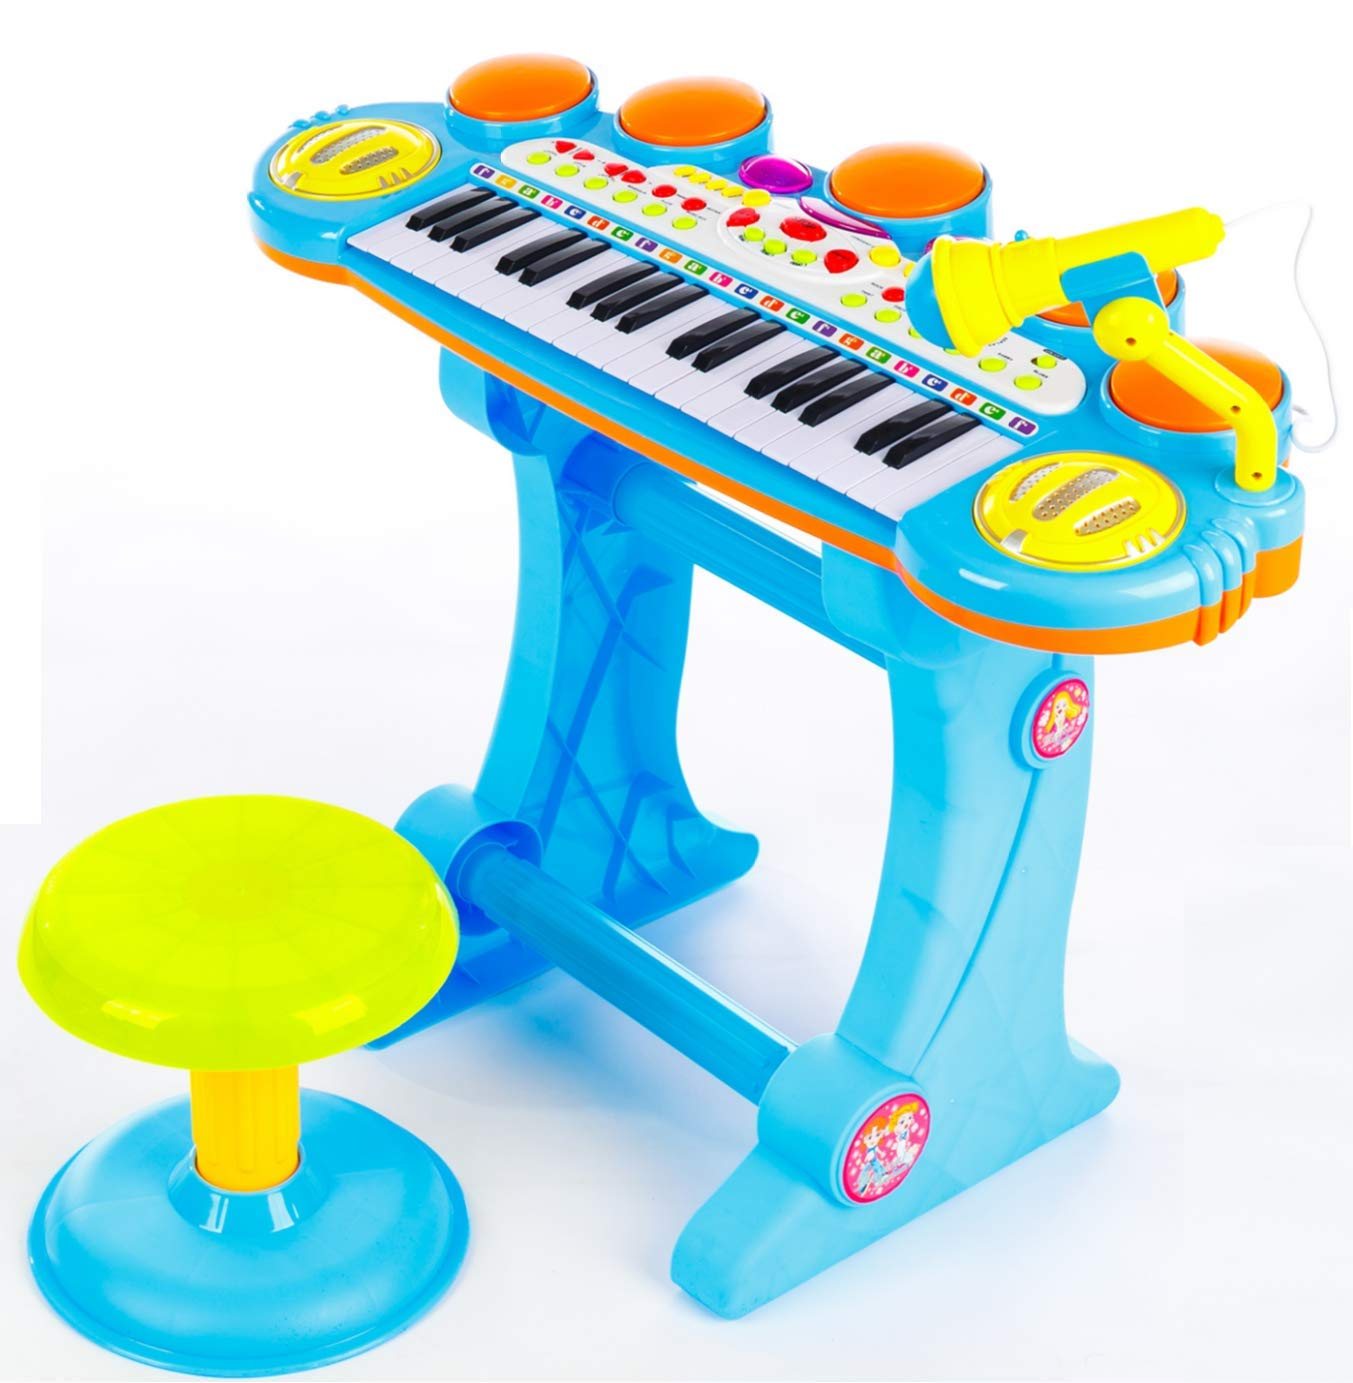 O.B Toys&Gift Musical Instrument Piano Toy 37-Key Kids Electronic Keyboard Organ w/ Stool , Microphone , Record & Playback Custom - Electronic Piano Toy for Kids & Toddler (Blue) by O.B Toys&Gift